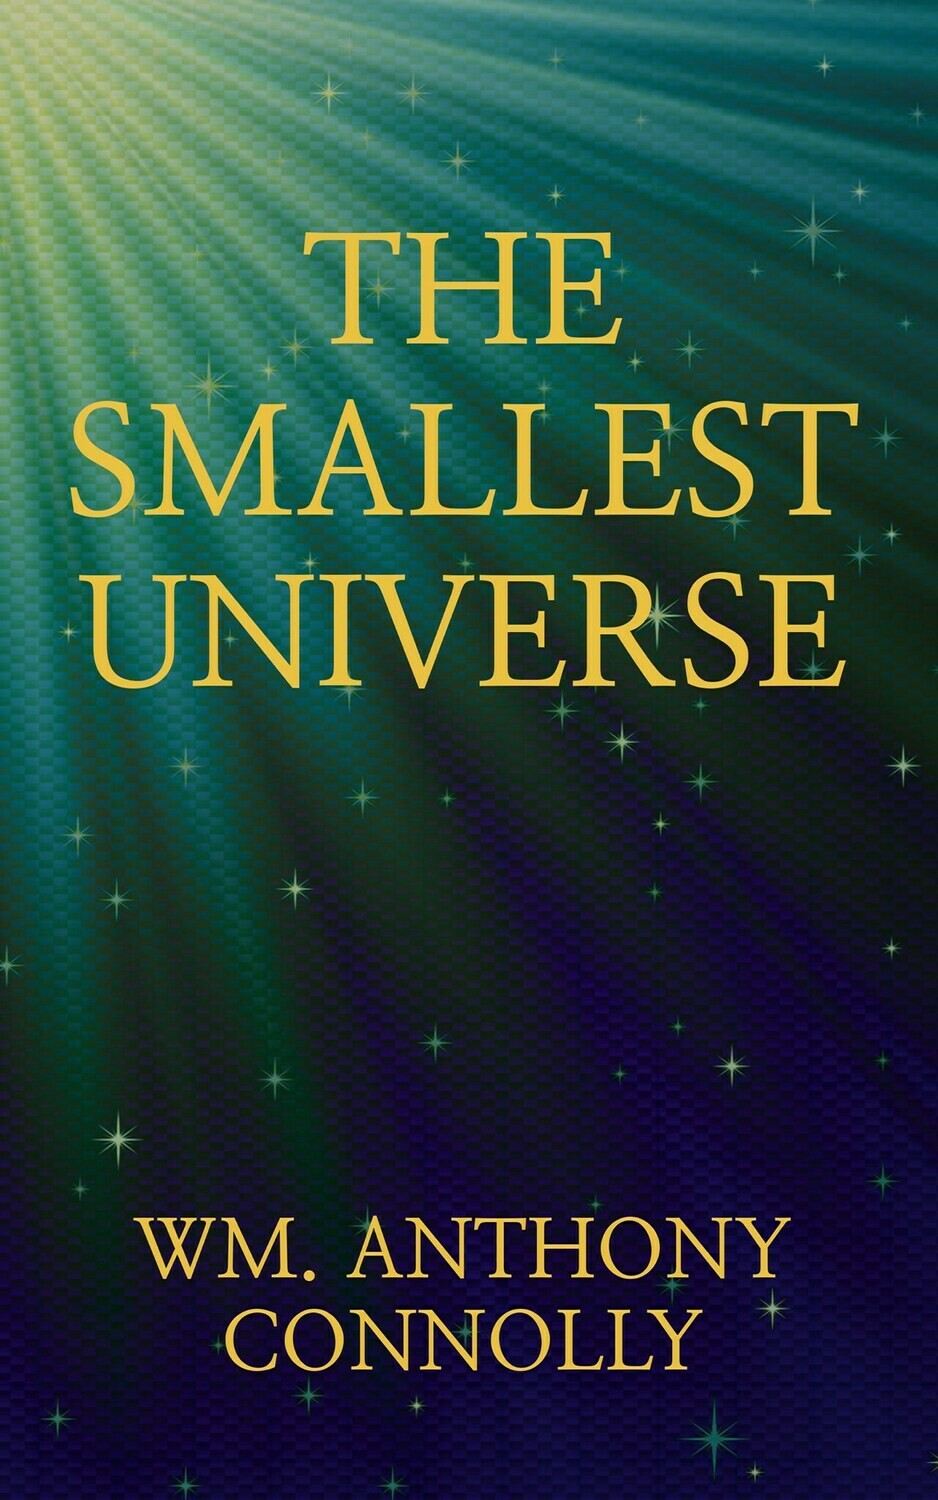 The Smallest Universe, by Wm. Anthony Connolly